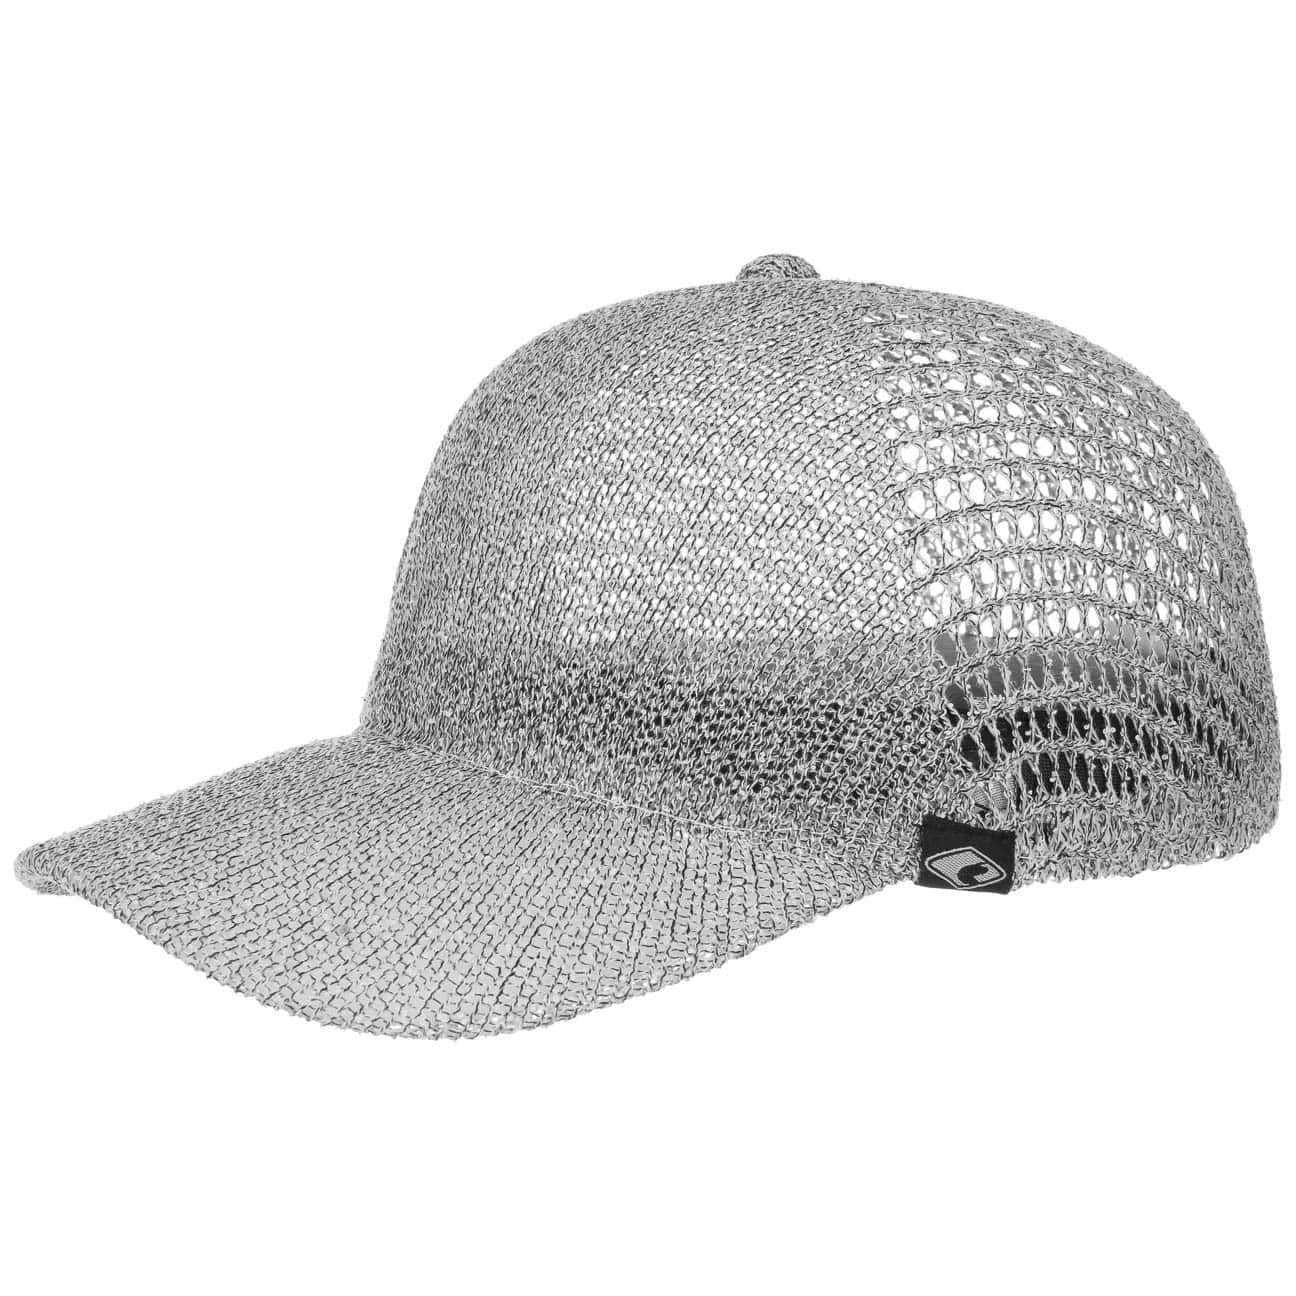 Gorra de B?isbol Odense Ultralight by Chillouts  fitted cap